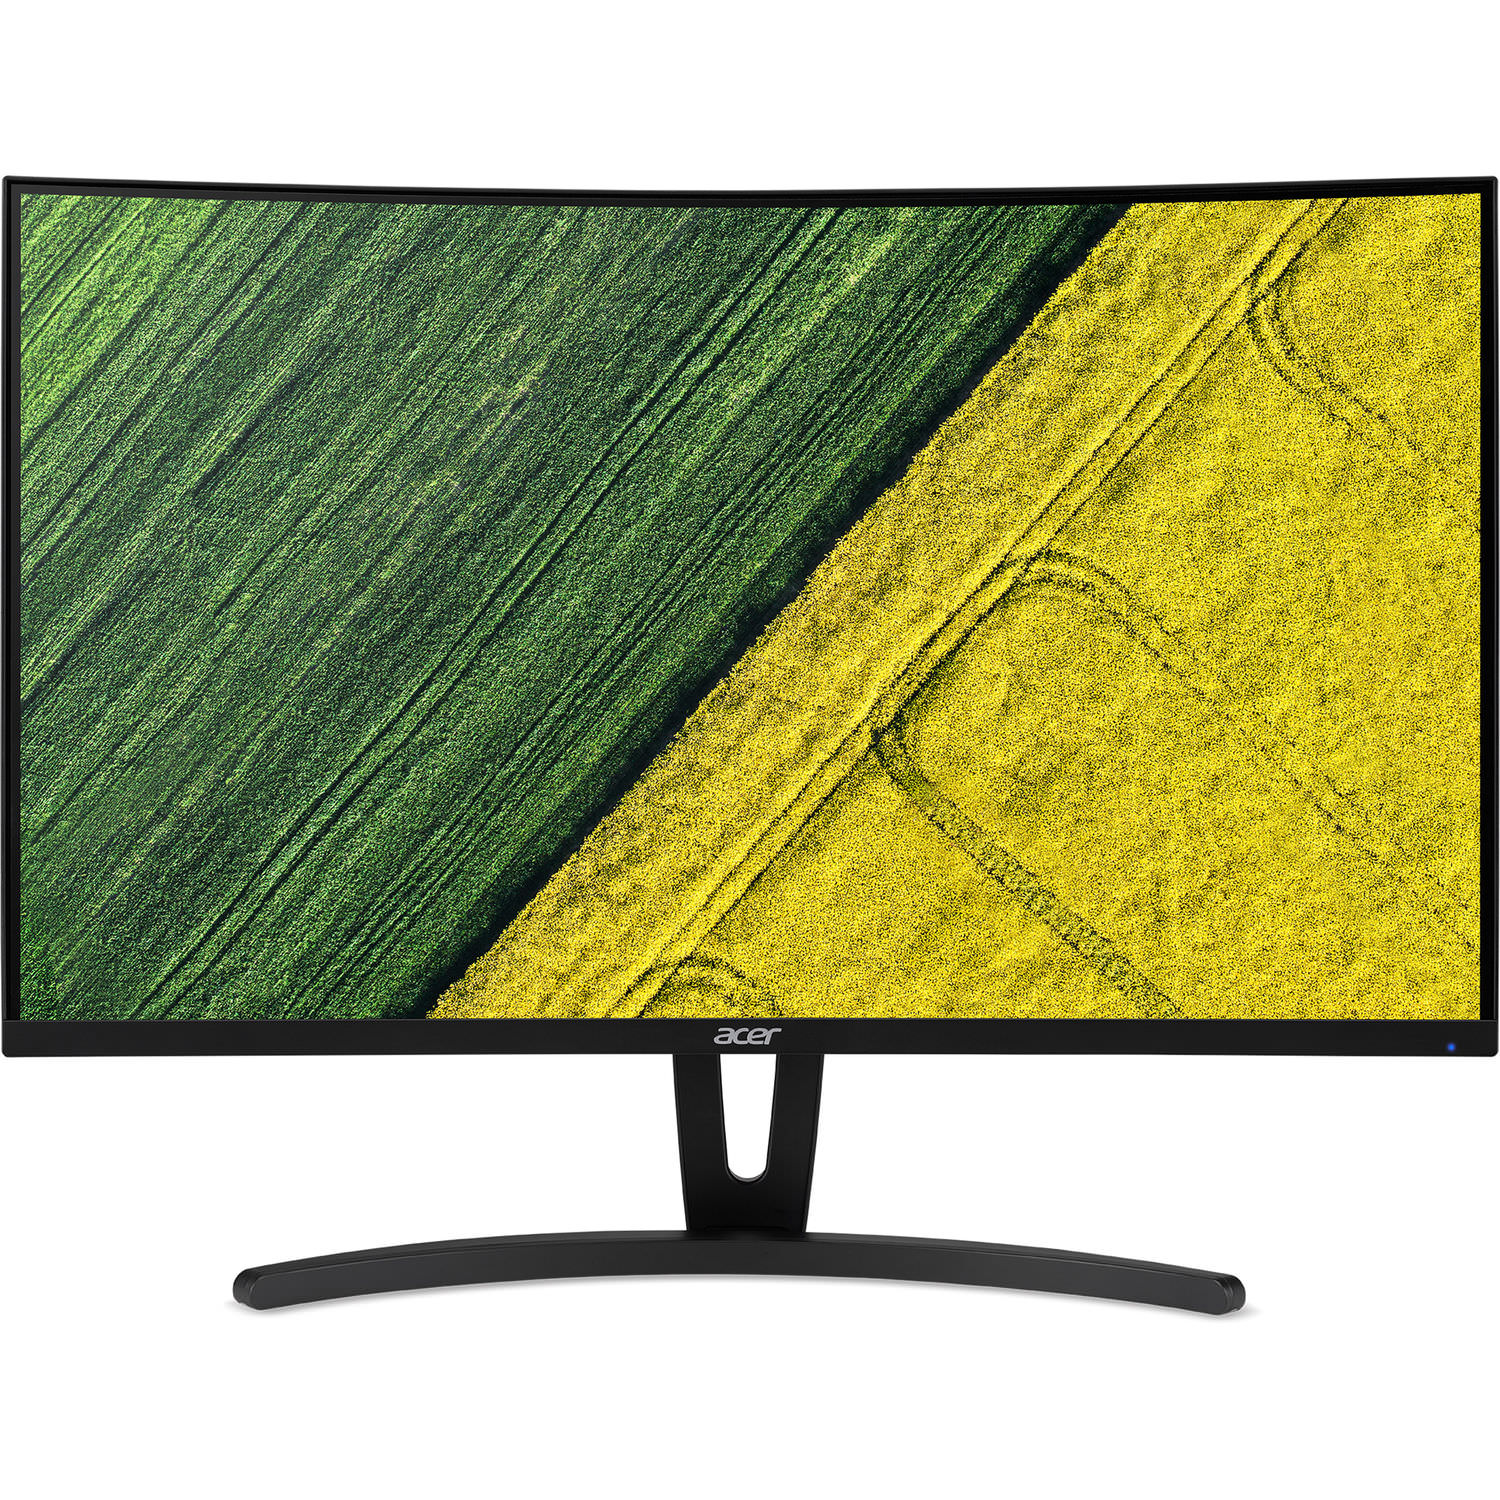 """Acer ED273 Abidpx 27"""" Curved LCD Monitor"""